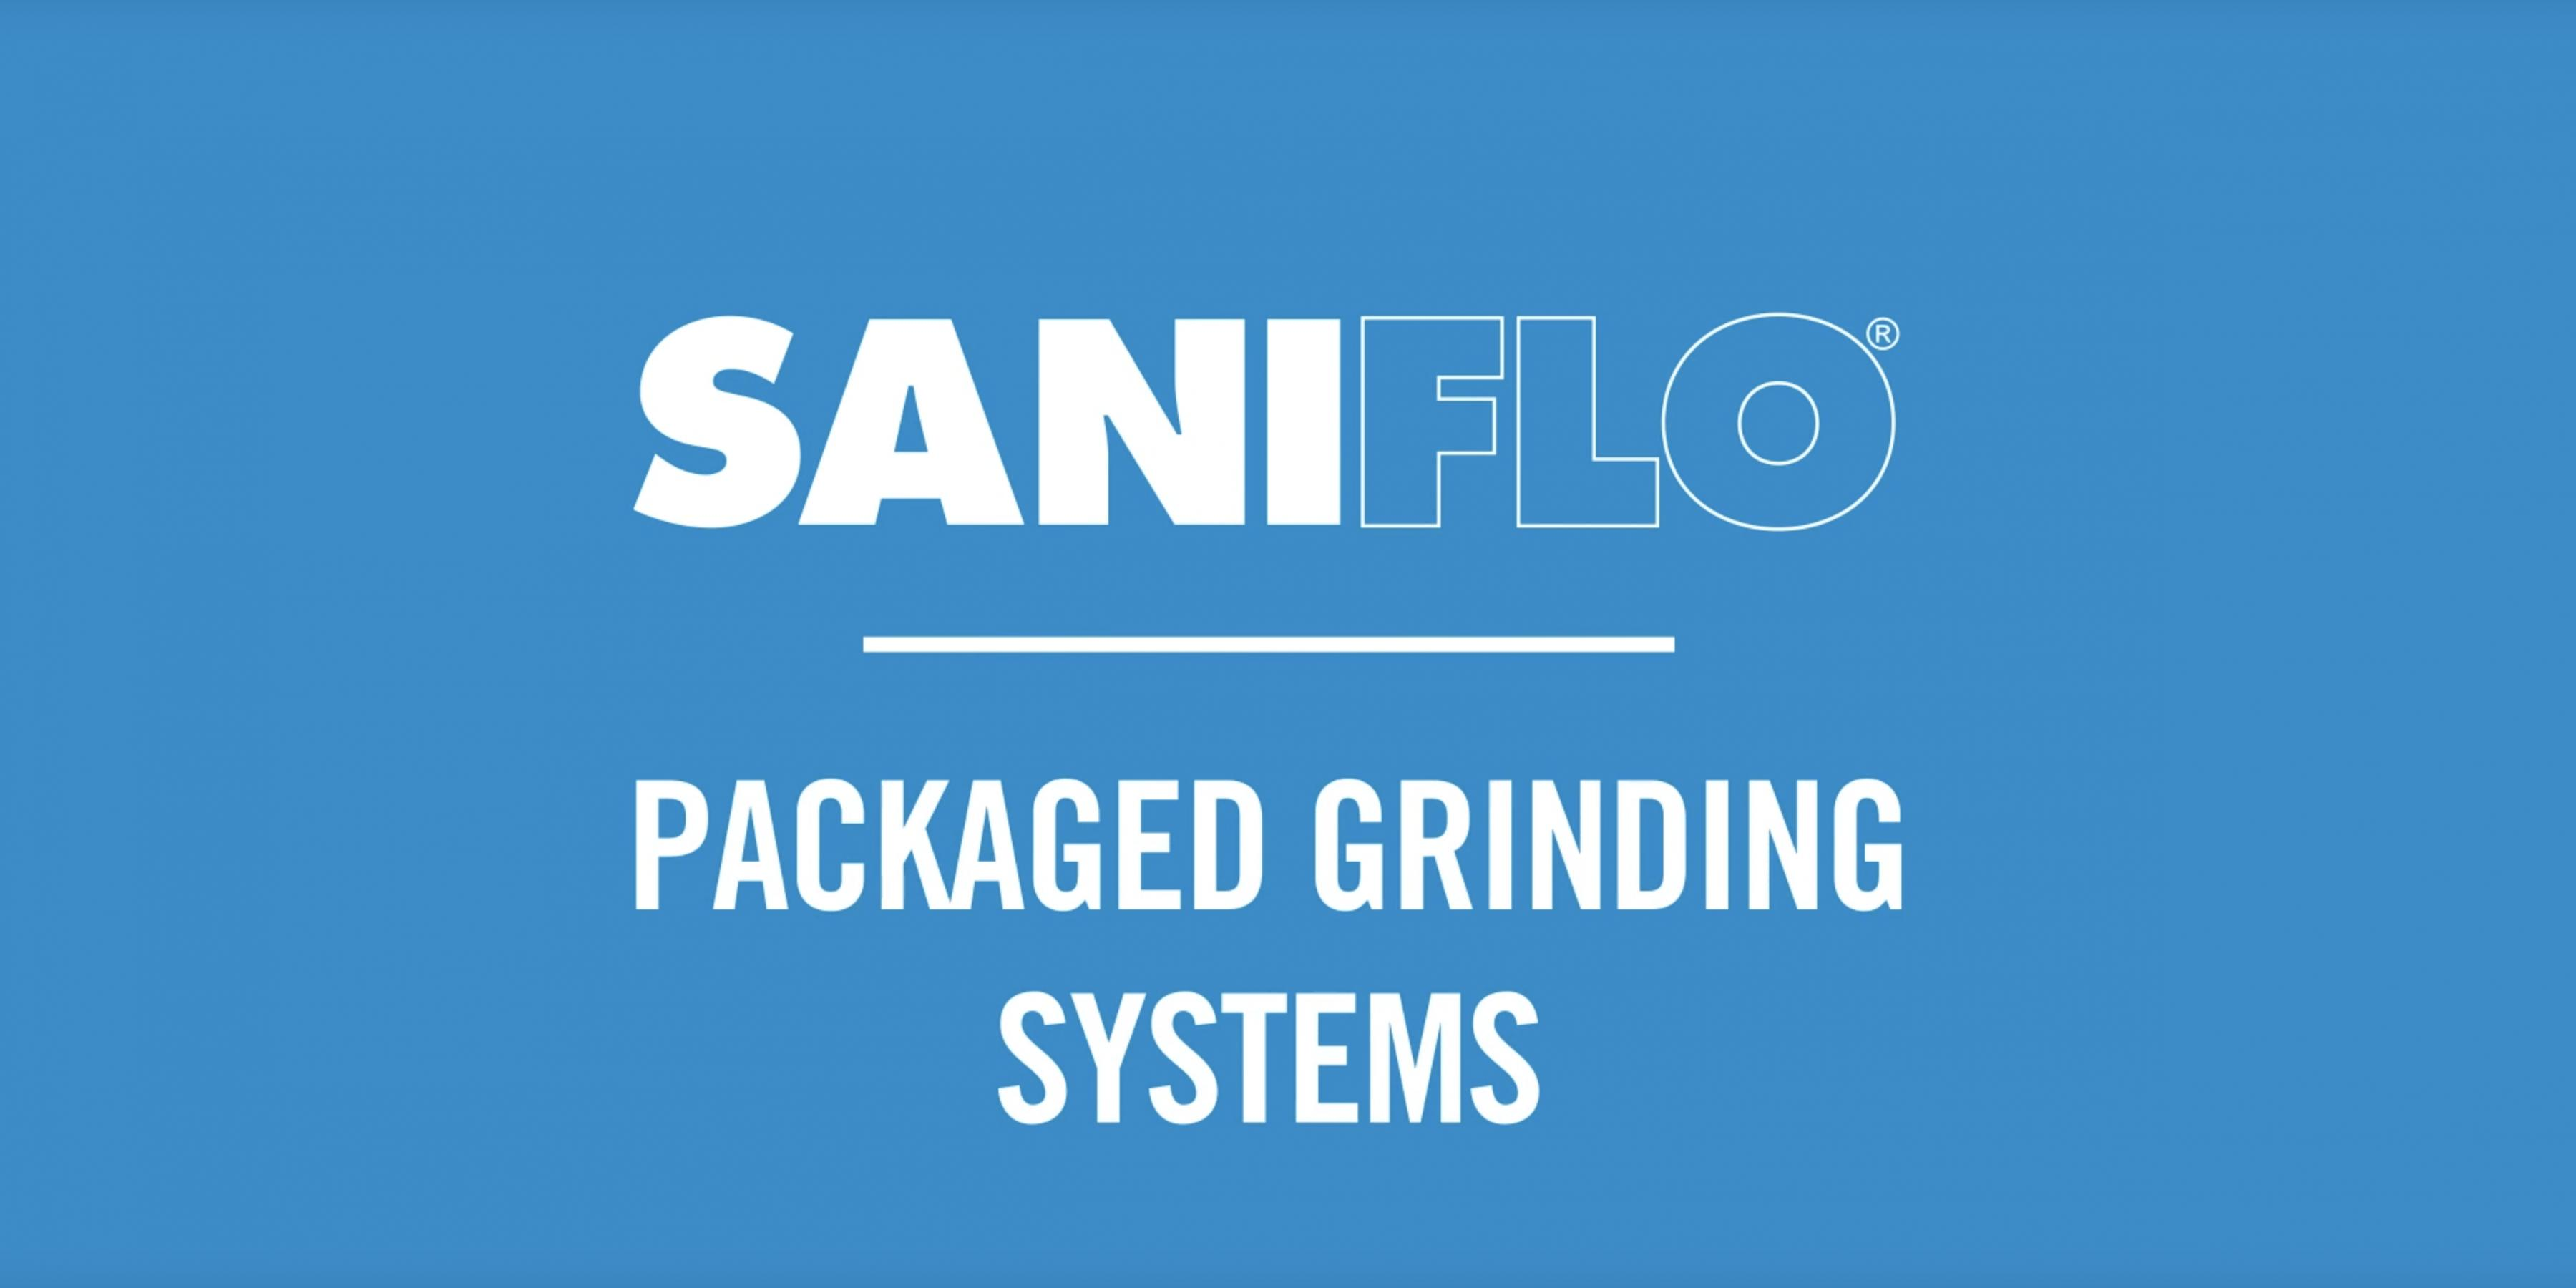 SANIFLO® Packaged Grinding Systems